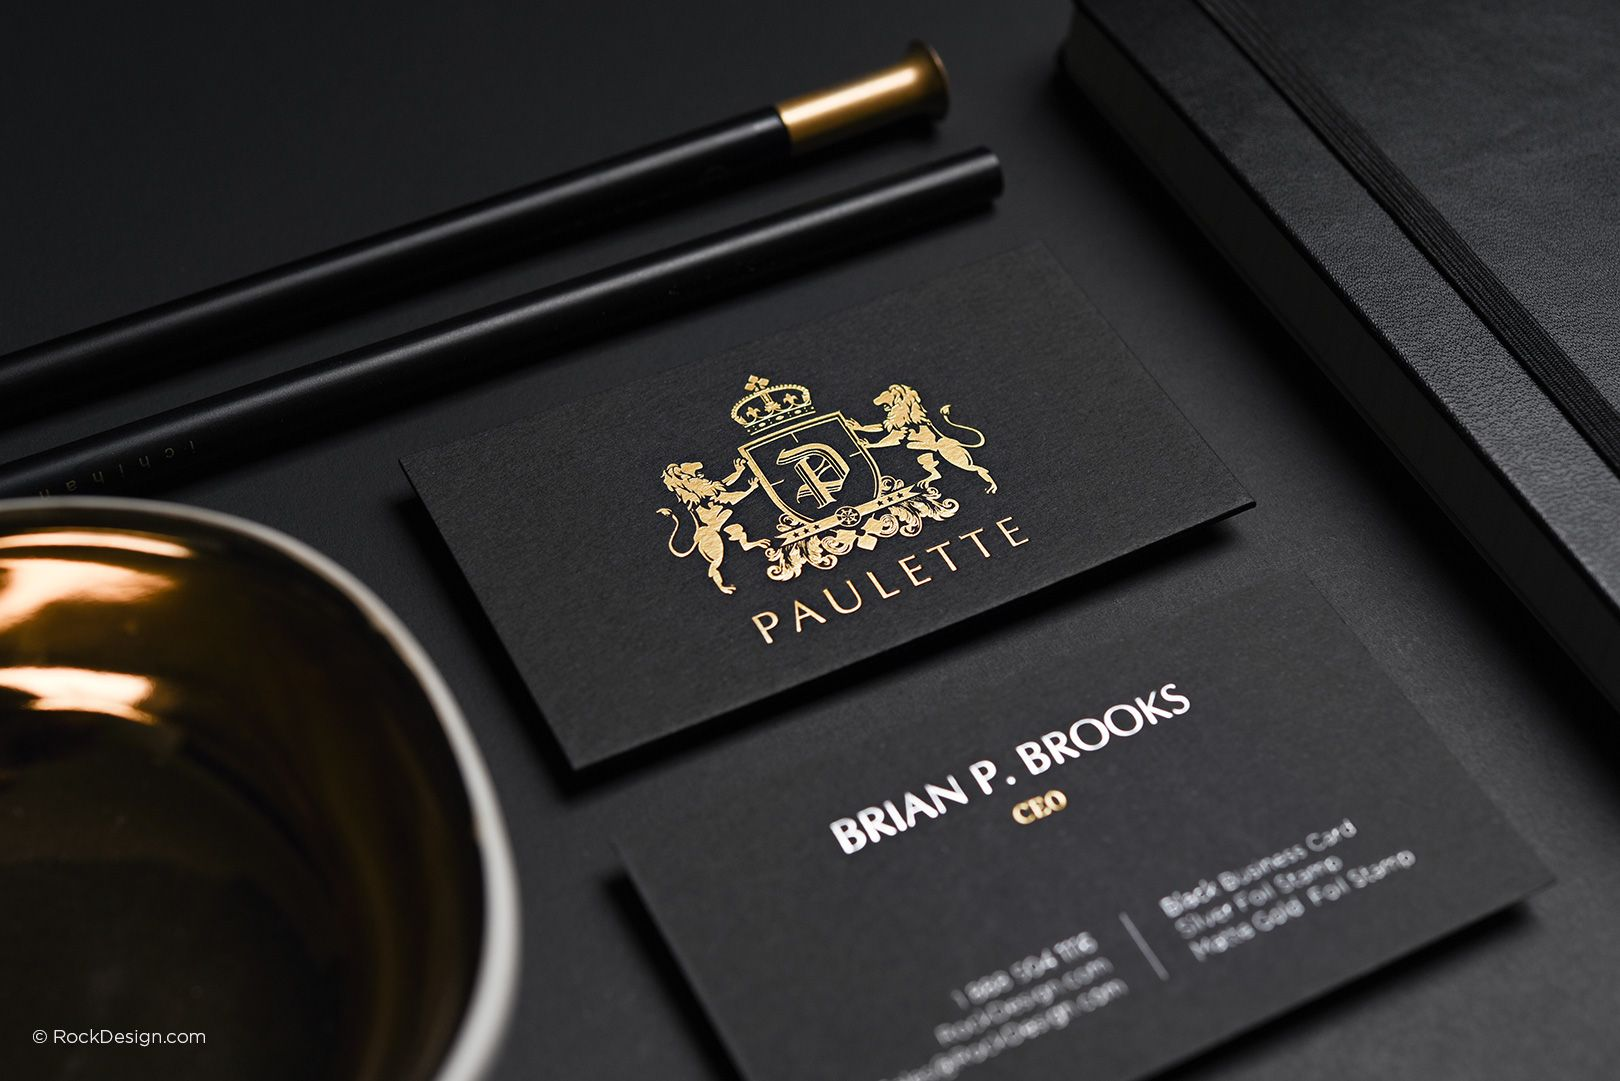 Black business card matte gold stamping elegant classy template black business card matte gold stamping elegant classy template paulette rockdesign luxury business card printing fbccfo Image collections